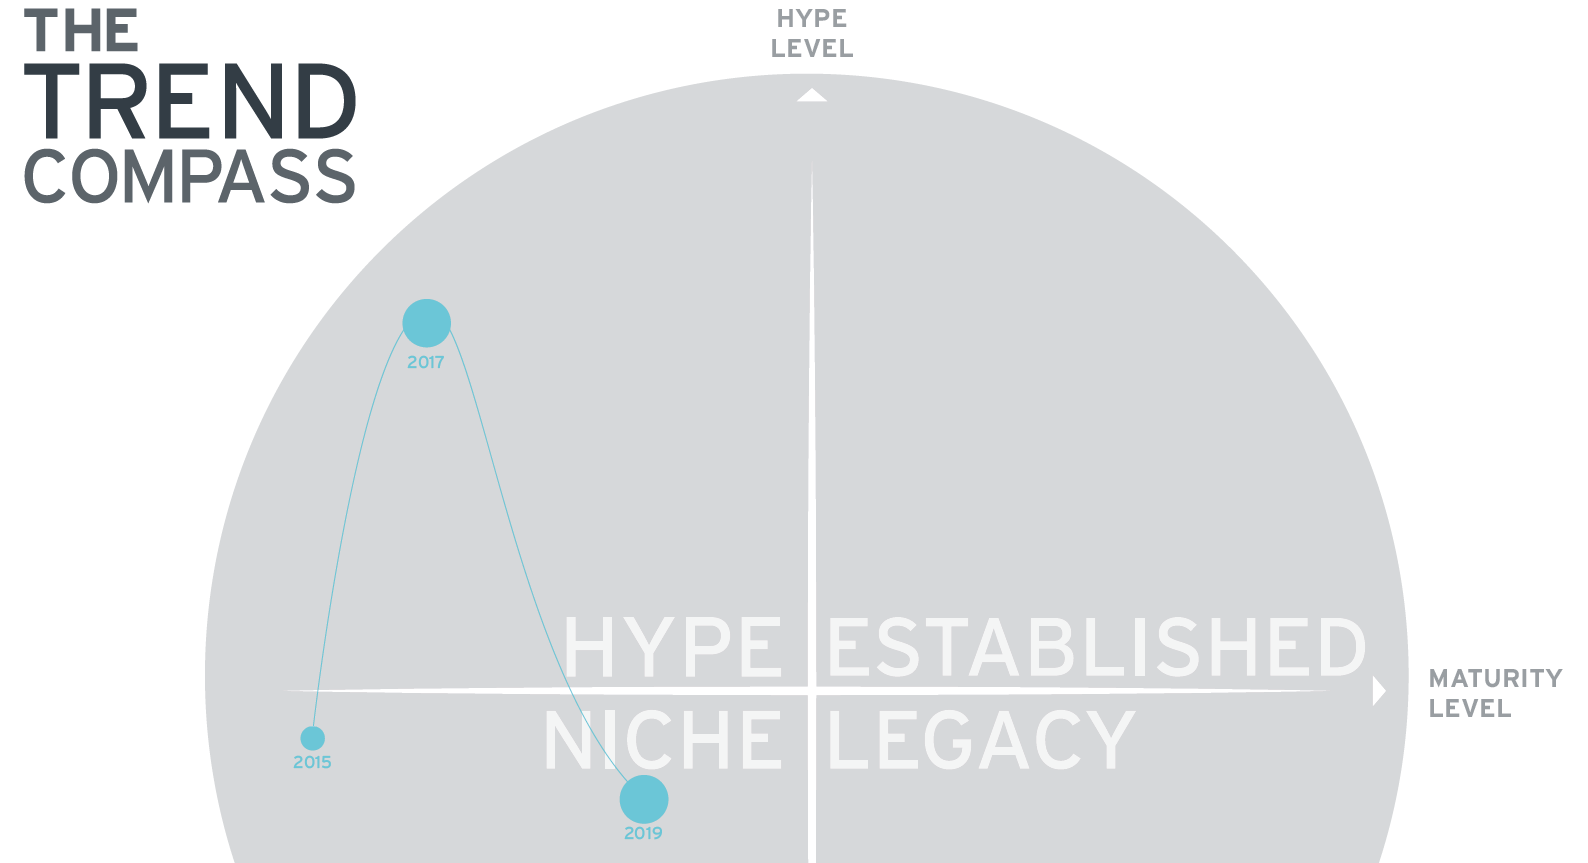 Figure 1: The Trend Compass: Blockchain Hype